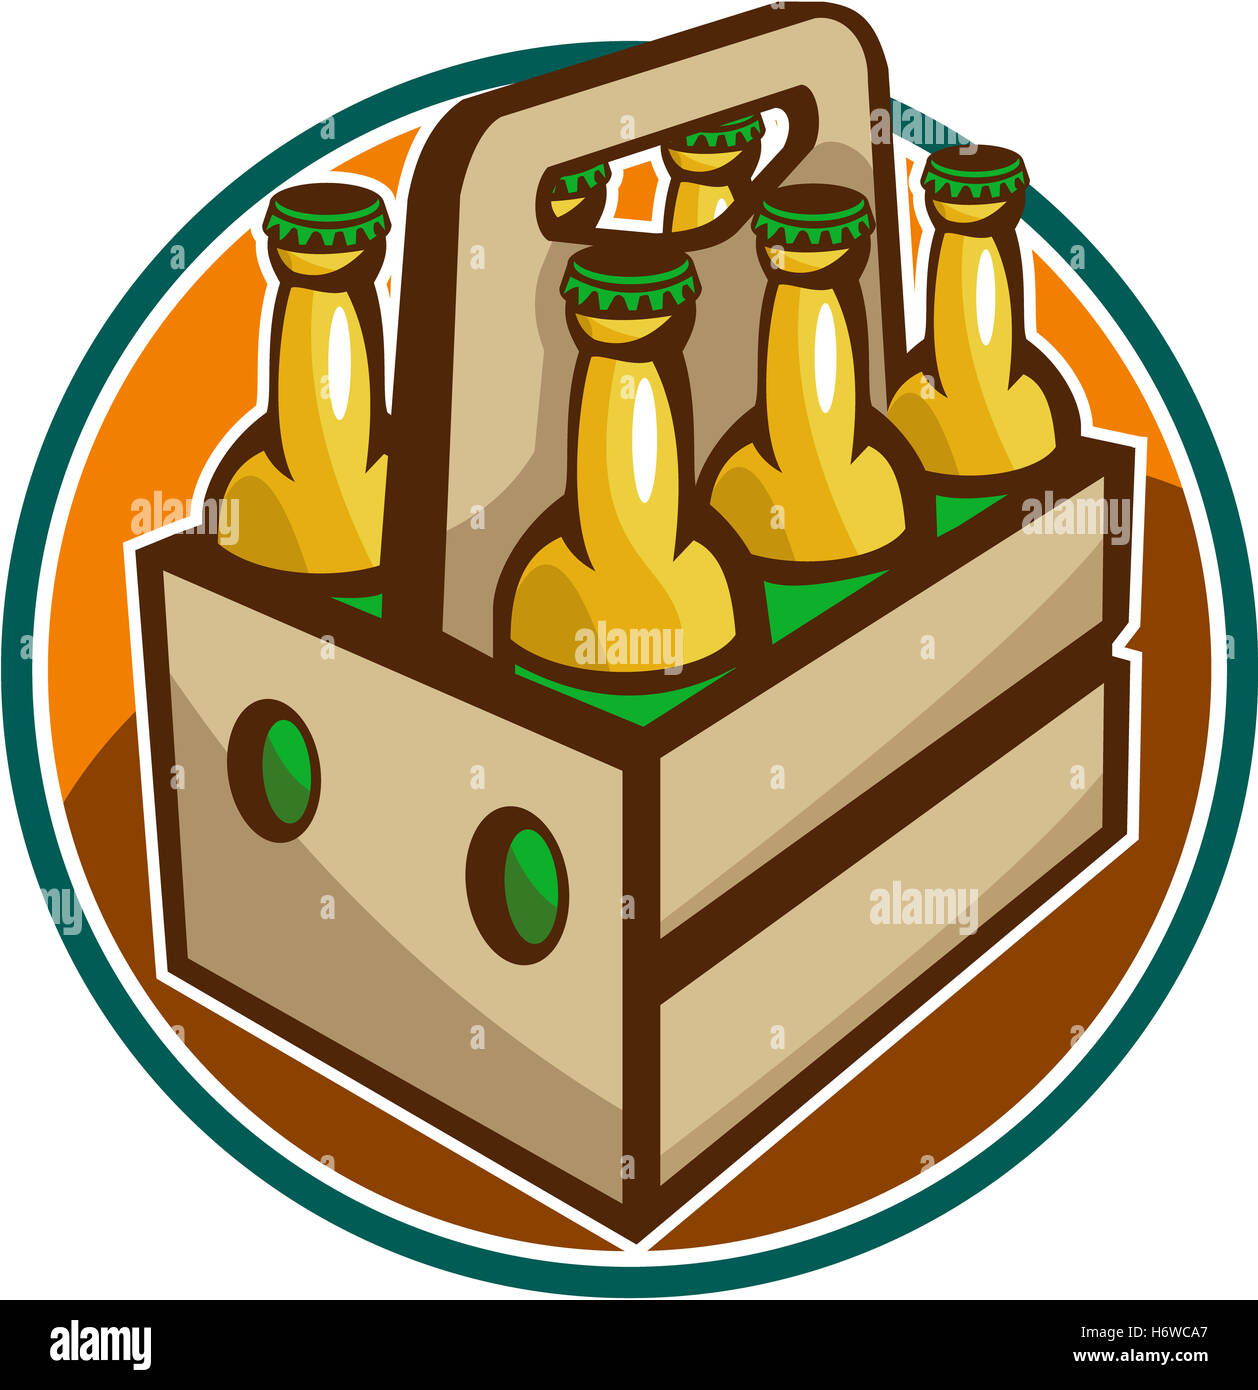 Bierkasten Clipart Crate Beer Stock Photos Crate Beer Stock Images Page 3 Alamy